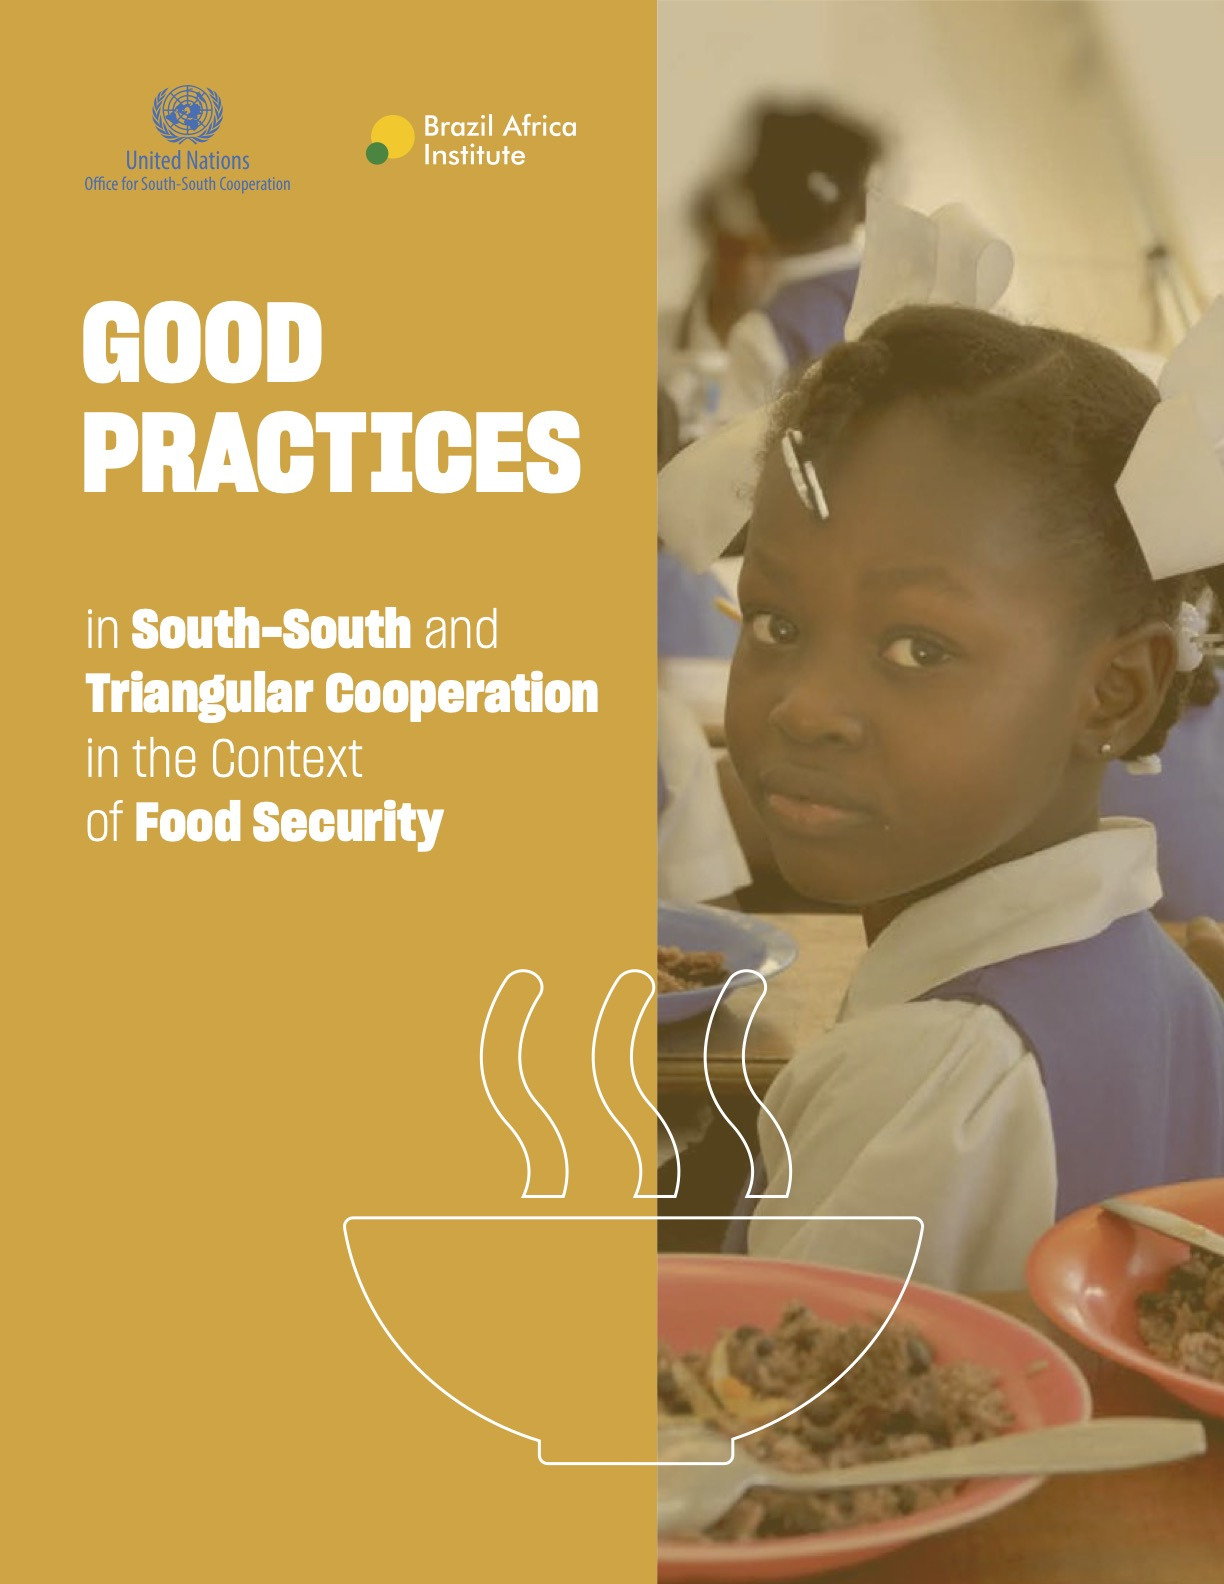 GOOD PRACTICES in South-South and Triangular Cooperation in the Context of Food Security